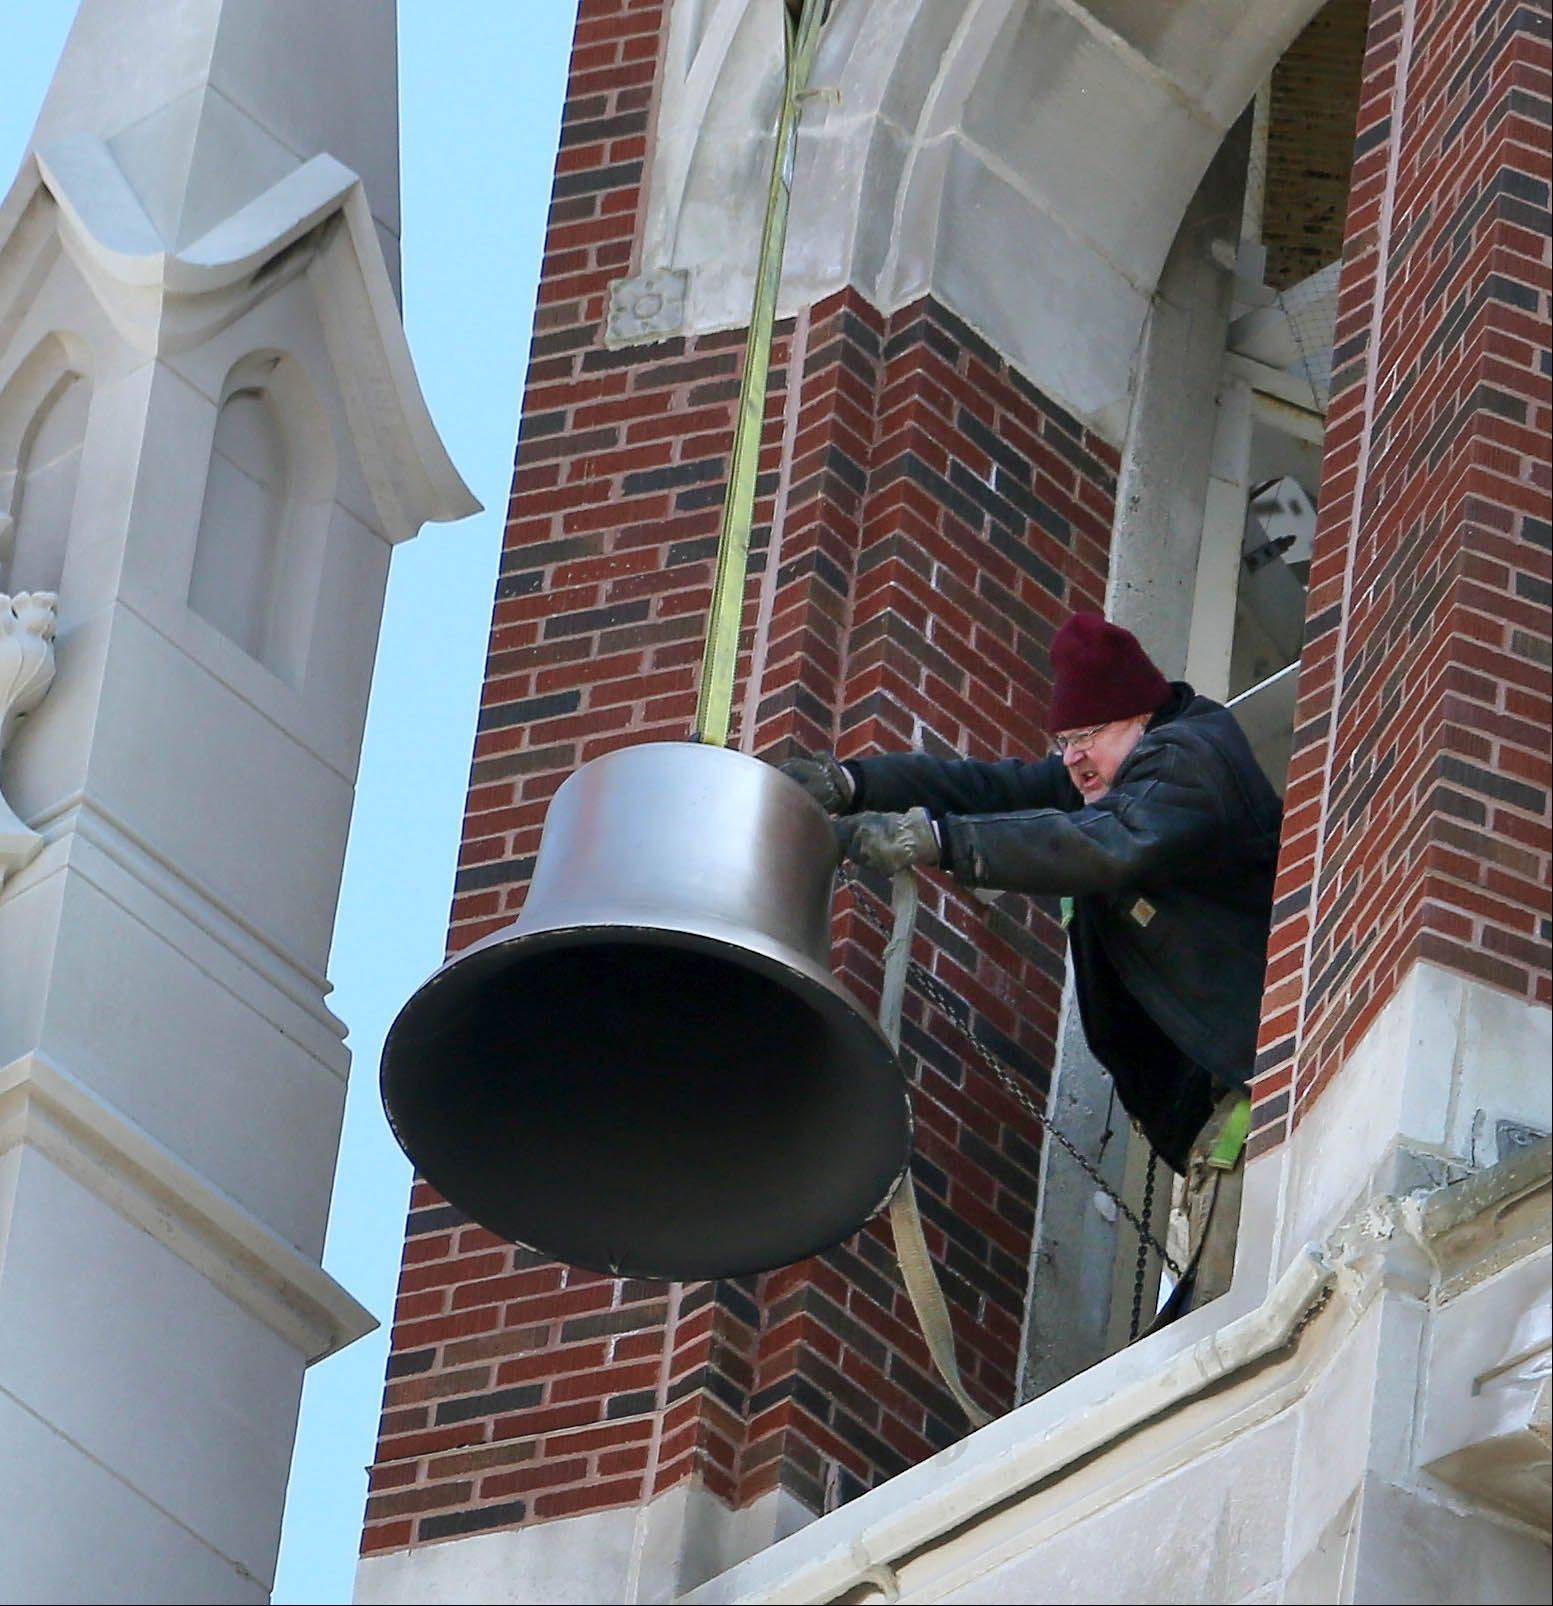 Crews hoist a bell into the tower at Ss. Peter and Paul Catholic Church in Naperville.